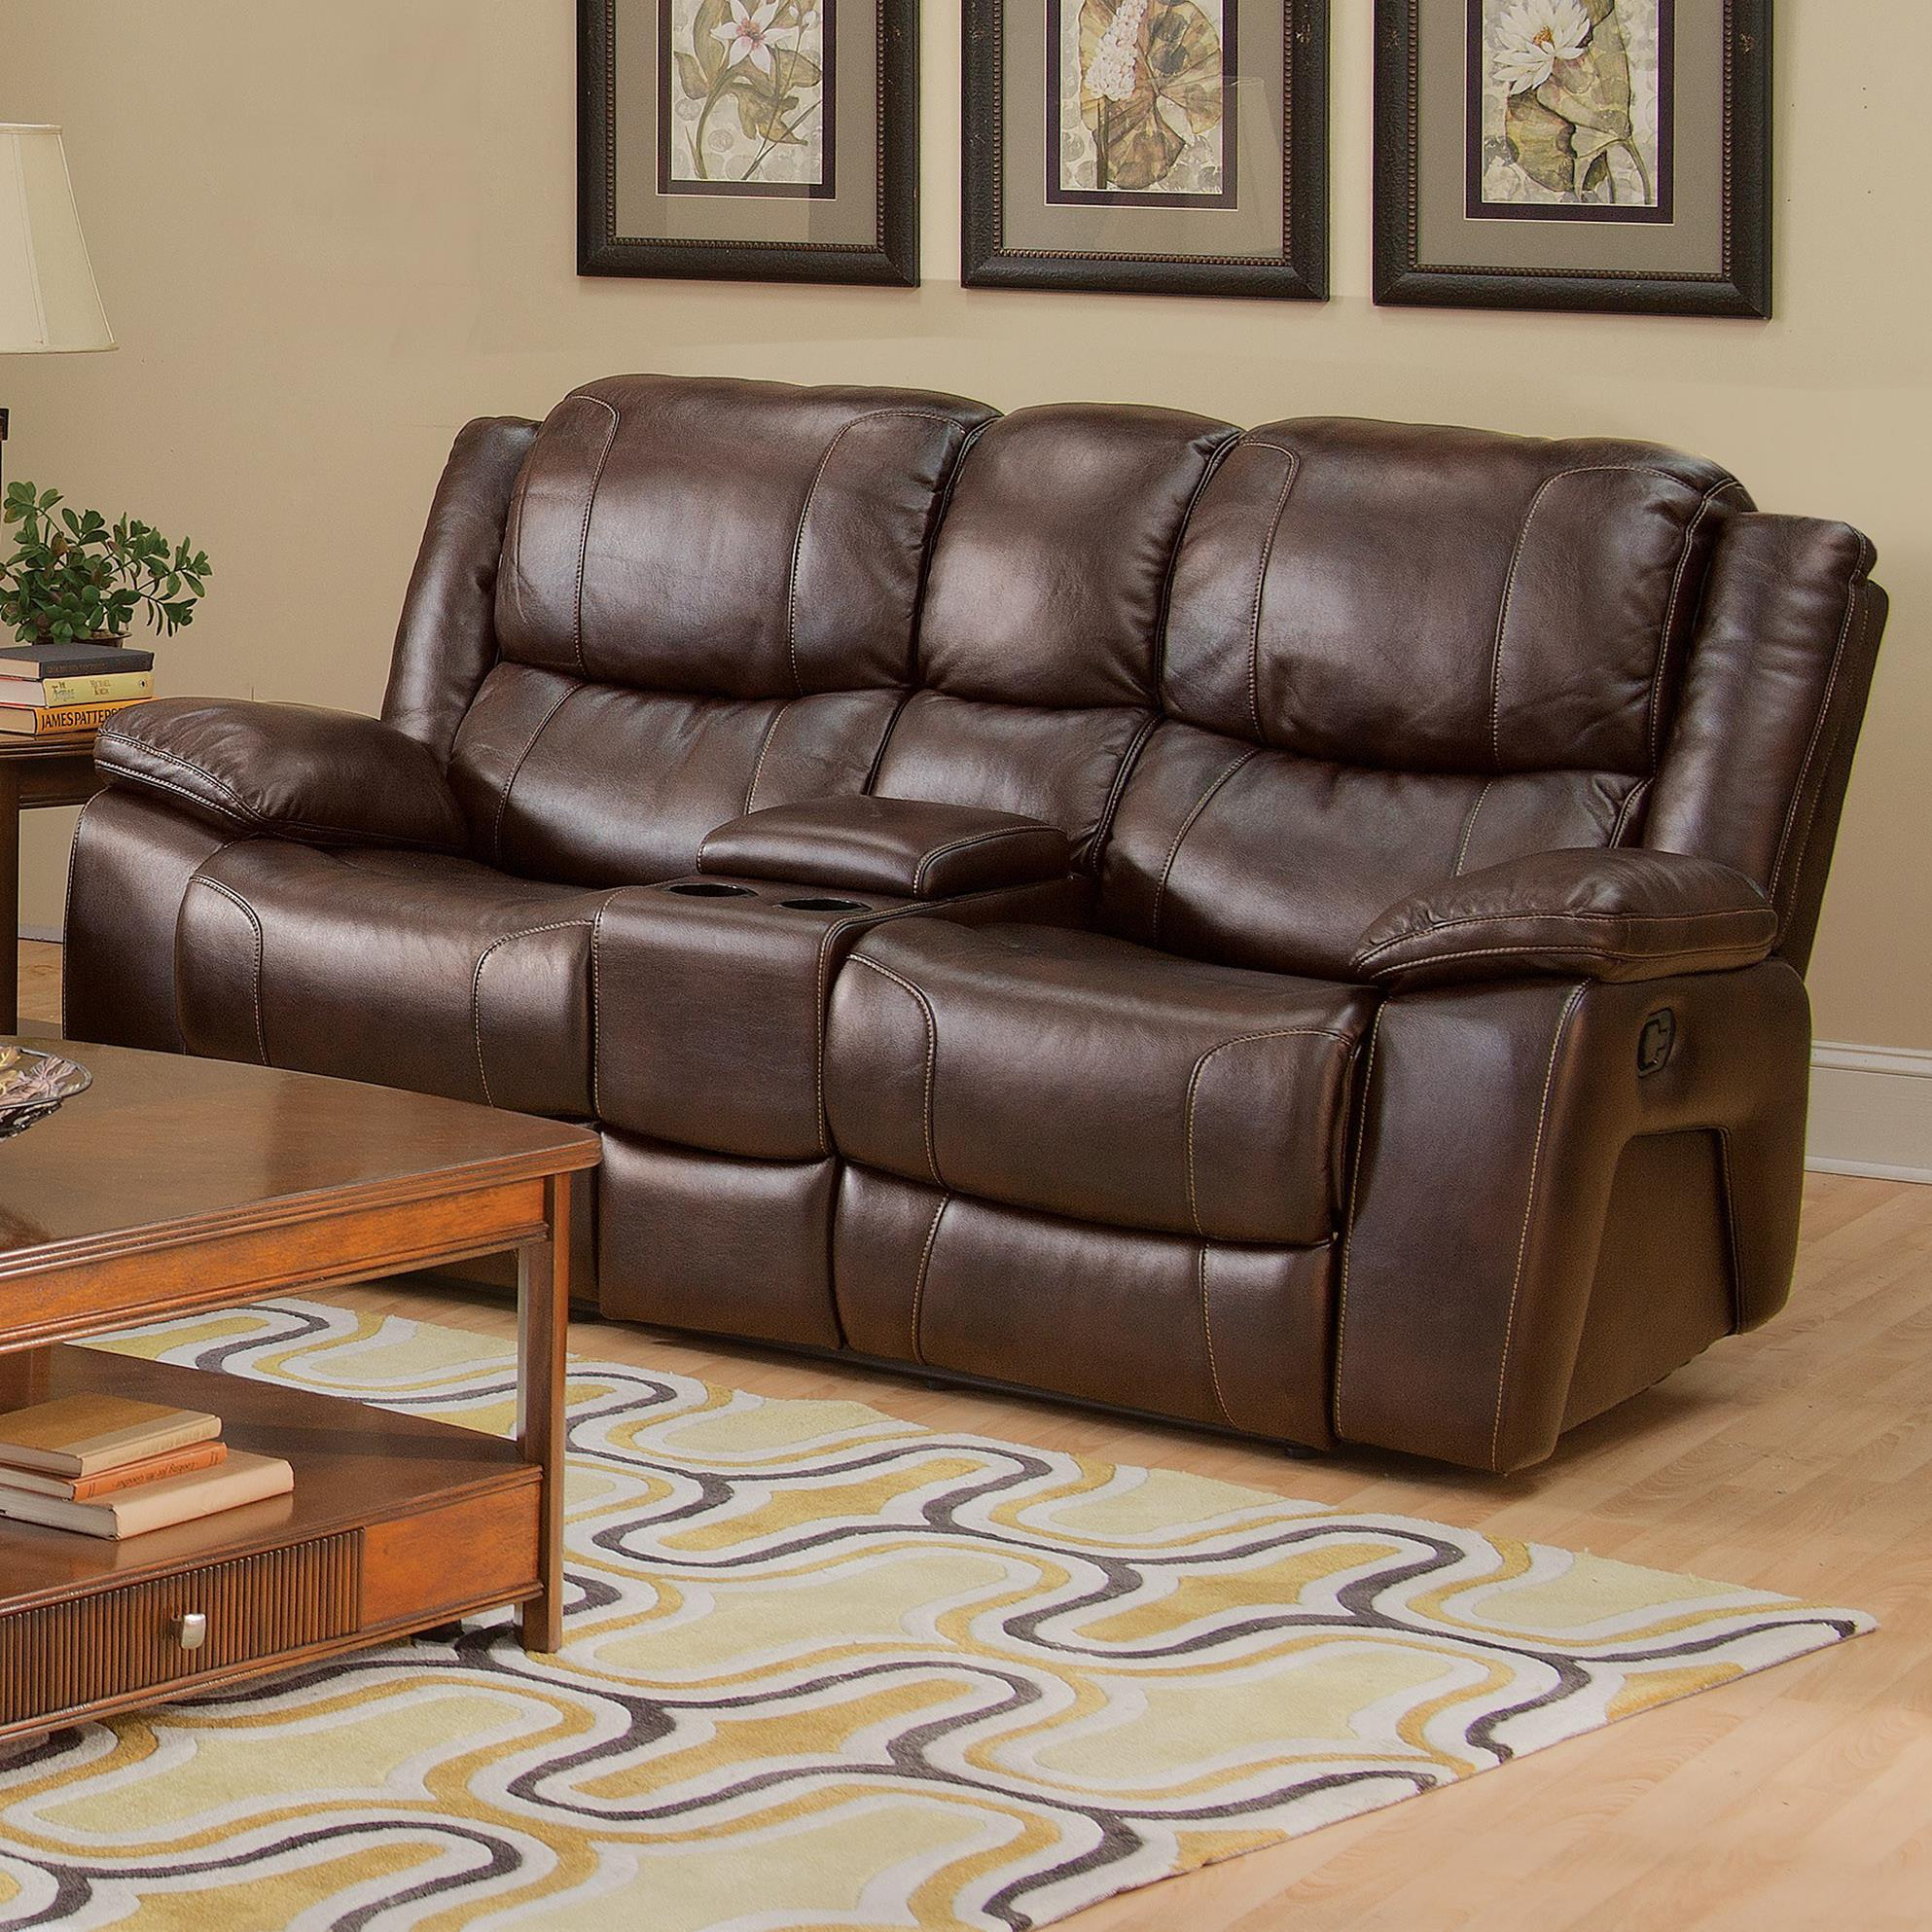 New classic kenwood casual dual recliner console loveseat with cup holders and storage drawer Loveseat with cup holders